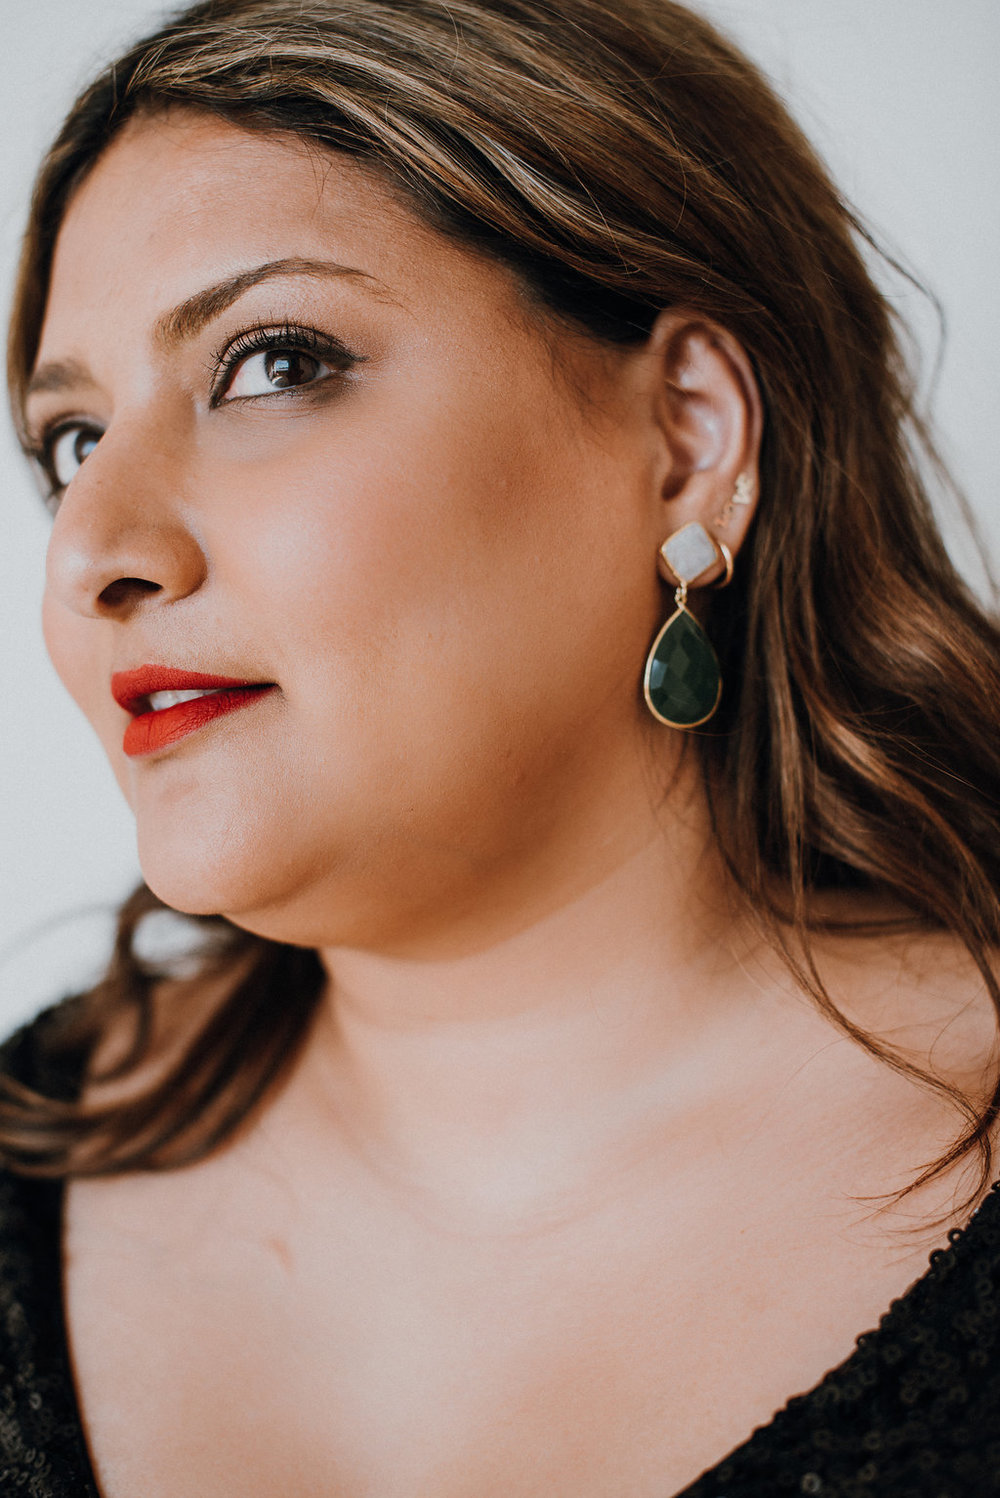 Shop for these earrings here. Photo credit: Suzuran Photography